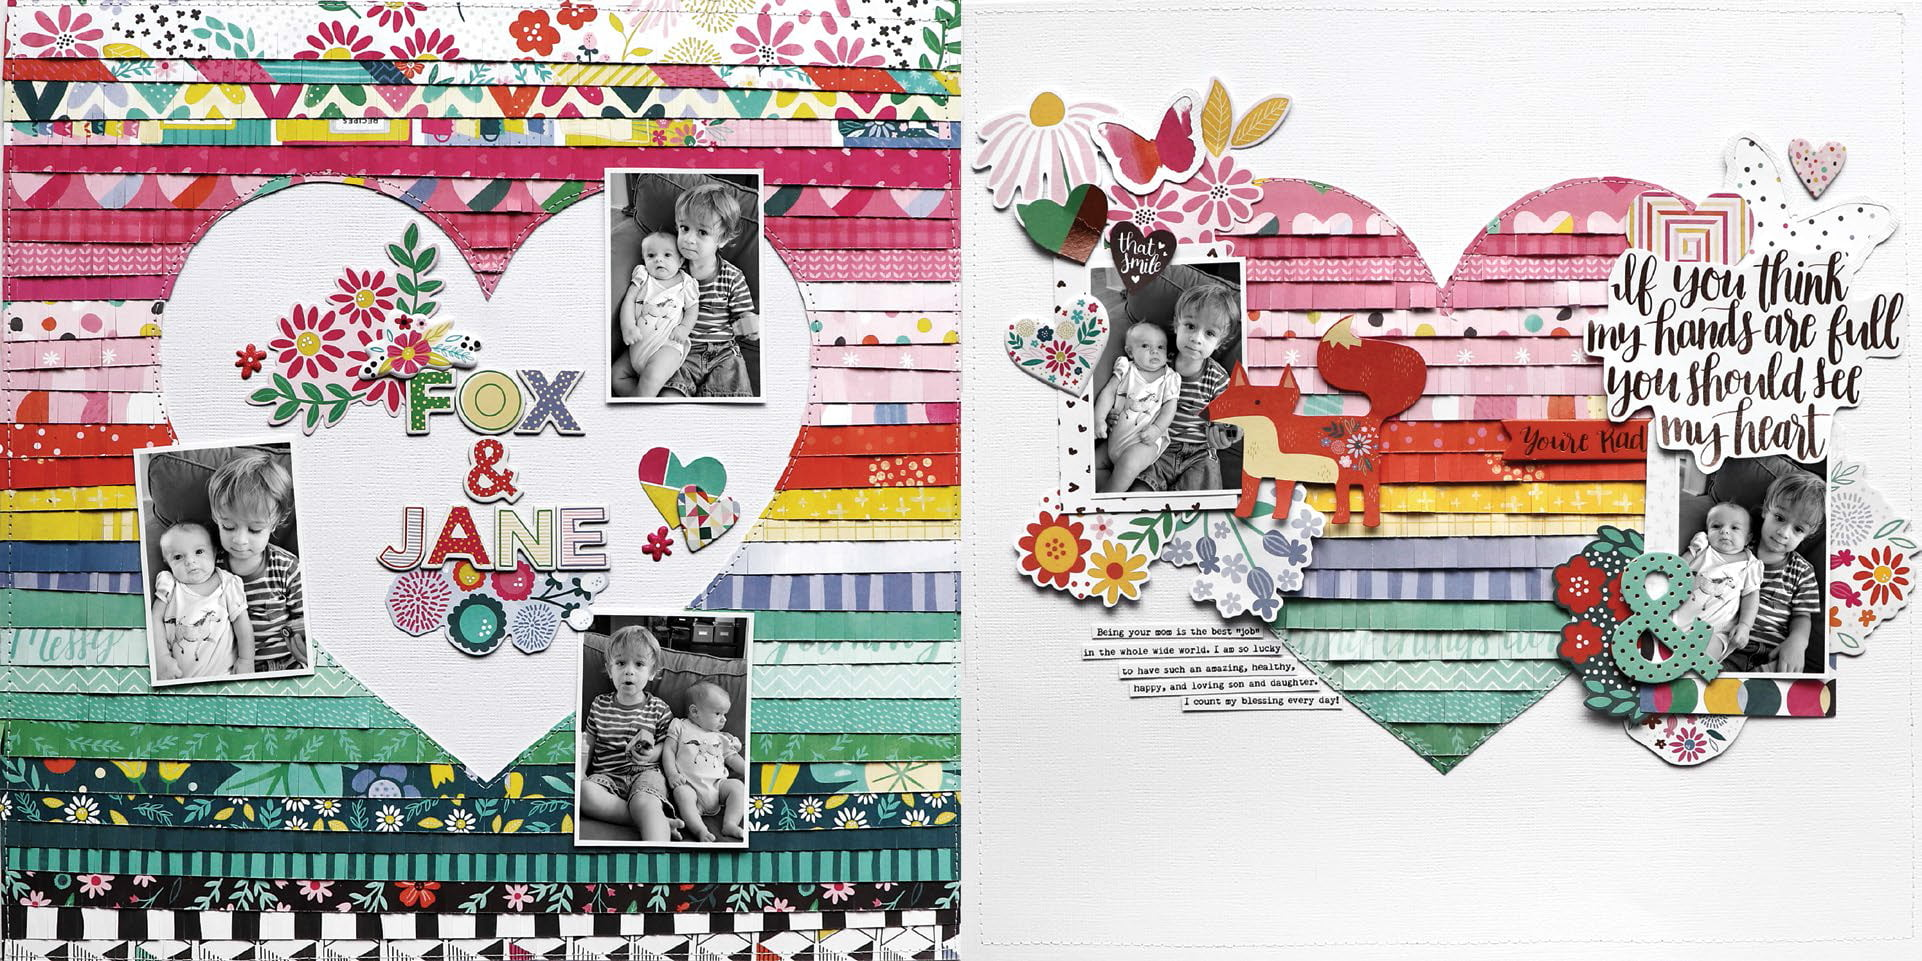 Fox & Jane by Paige Evans for Scrapbook & Cards Today